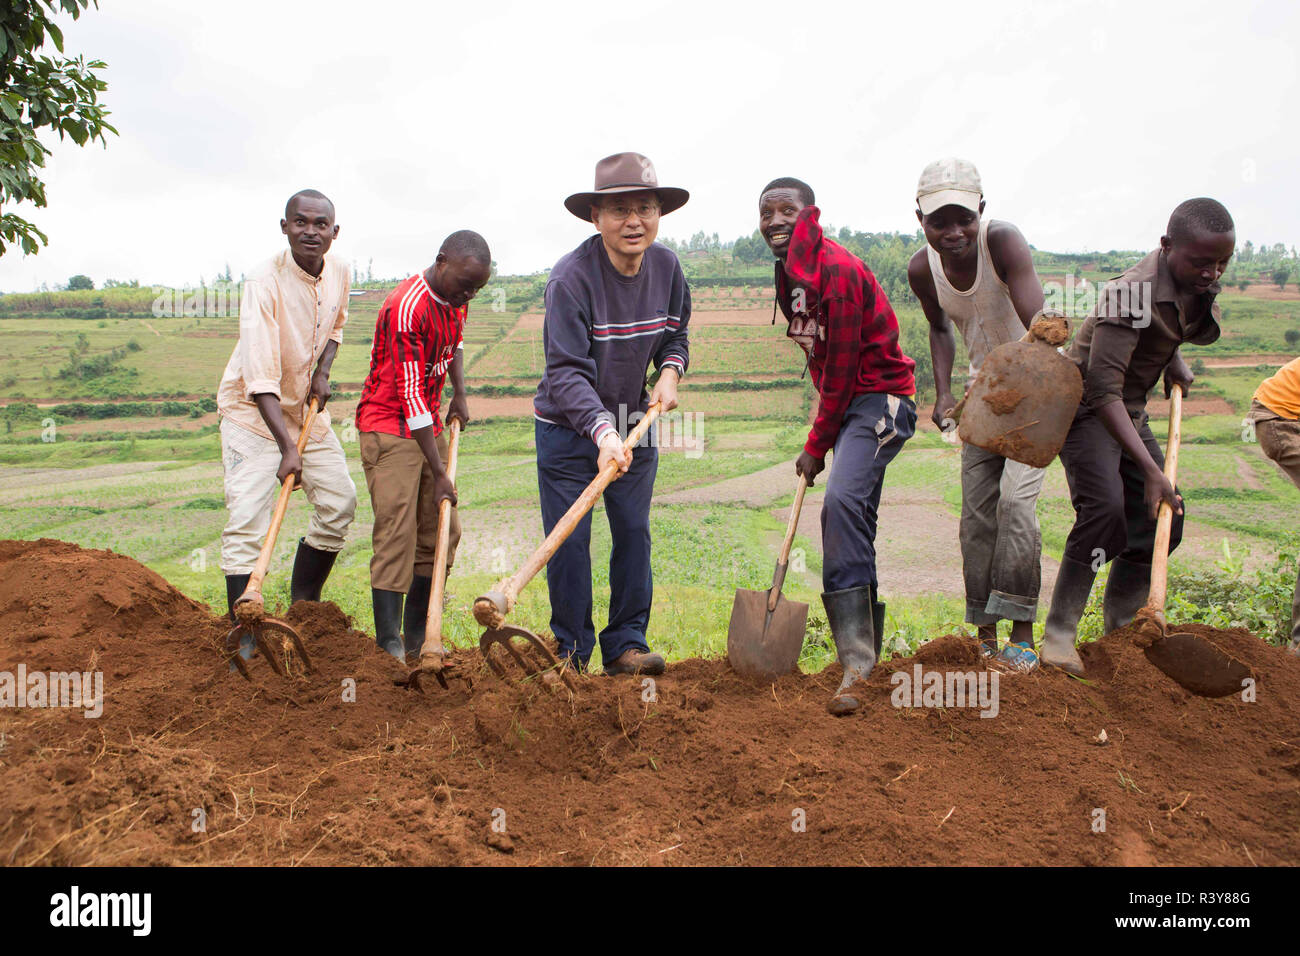 """(181124) -- KAMONYI (RWANDA), Nov. 24, 2018 (Xinhua) -- Chinese Ambassador to Rwanda Rao Hongwei (3rd L) participates in monthly community work, Umuganda, in Kamonyi district, central Rwanda, on Nov. 24, 2018. Diplomatic missions in Rwanda and Rwandan Ministry of Foreign Affairs and International Cooperation on Saturday organized a diplomatic Umuganda in Kamonyi. Taking root from Rwandan culture of self-help and cooperation, Umuganda, held on the last Saturday of the month, can be translated as """"coming together in common purpose to achieve an outcome,"""" according to Rwanda Governance Board. (Xi Stock Photo"""